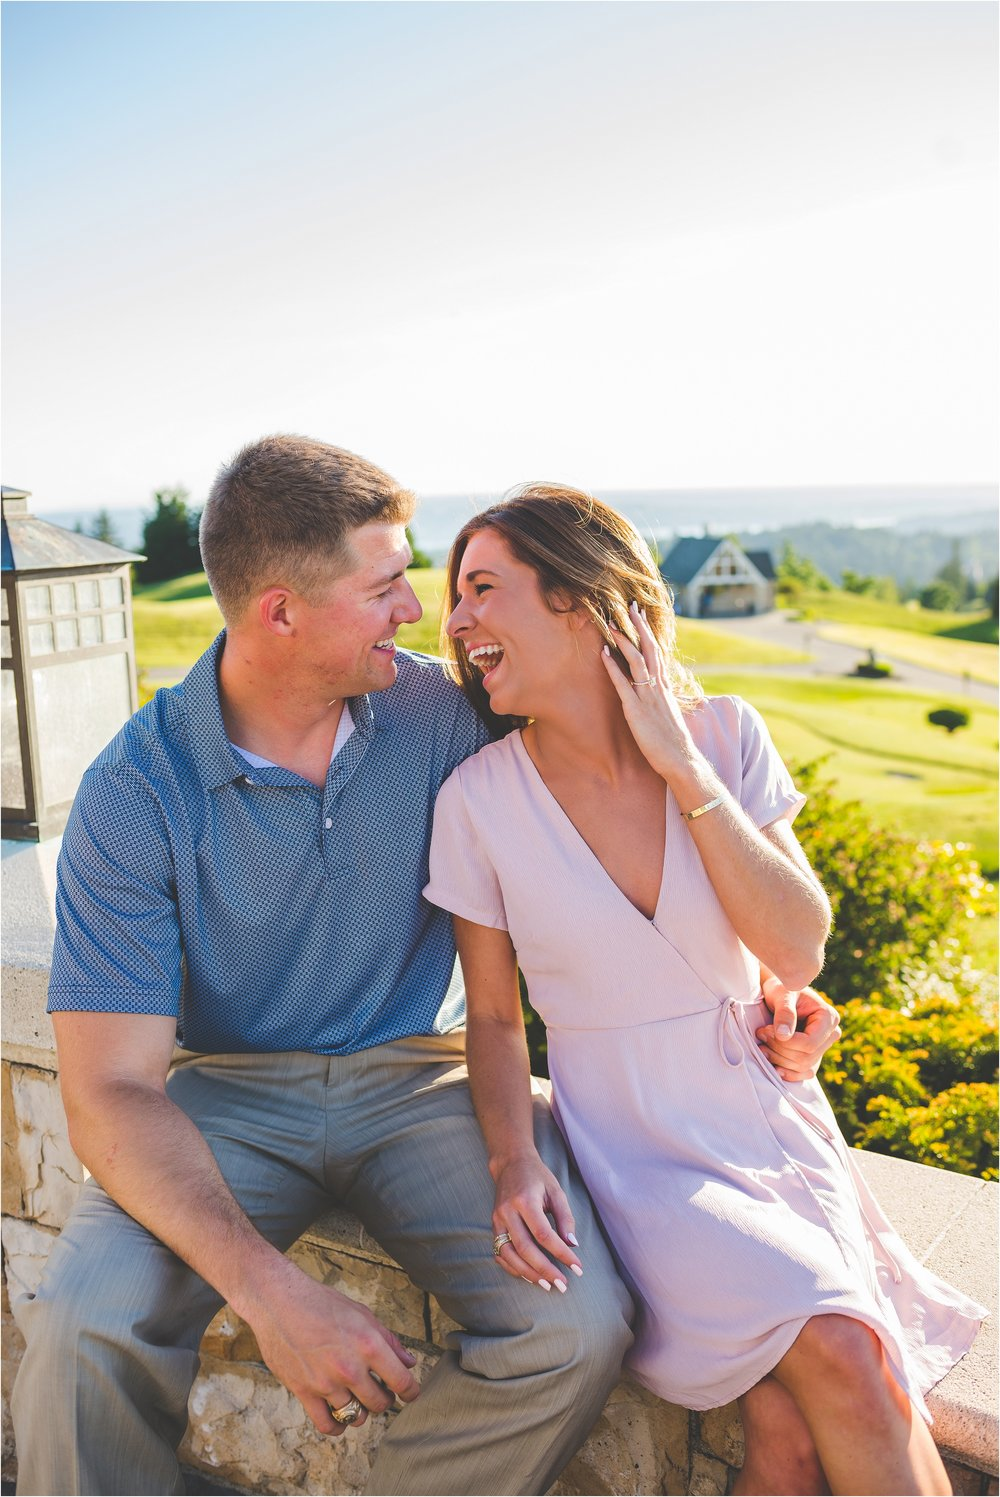 newcastle-golf-club-proposal-jannicka-mayte-seattle-washington-engagement-wedding-photographer_0021.jpg